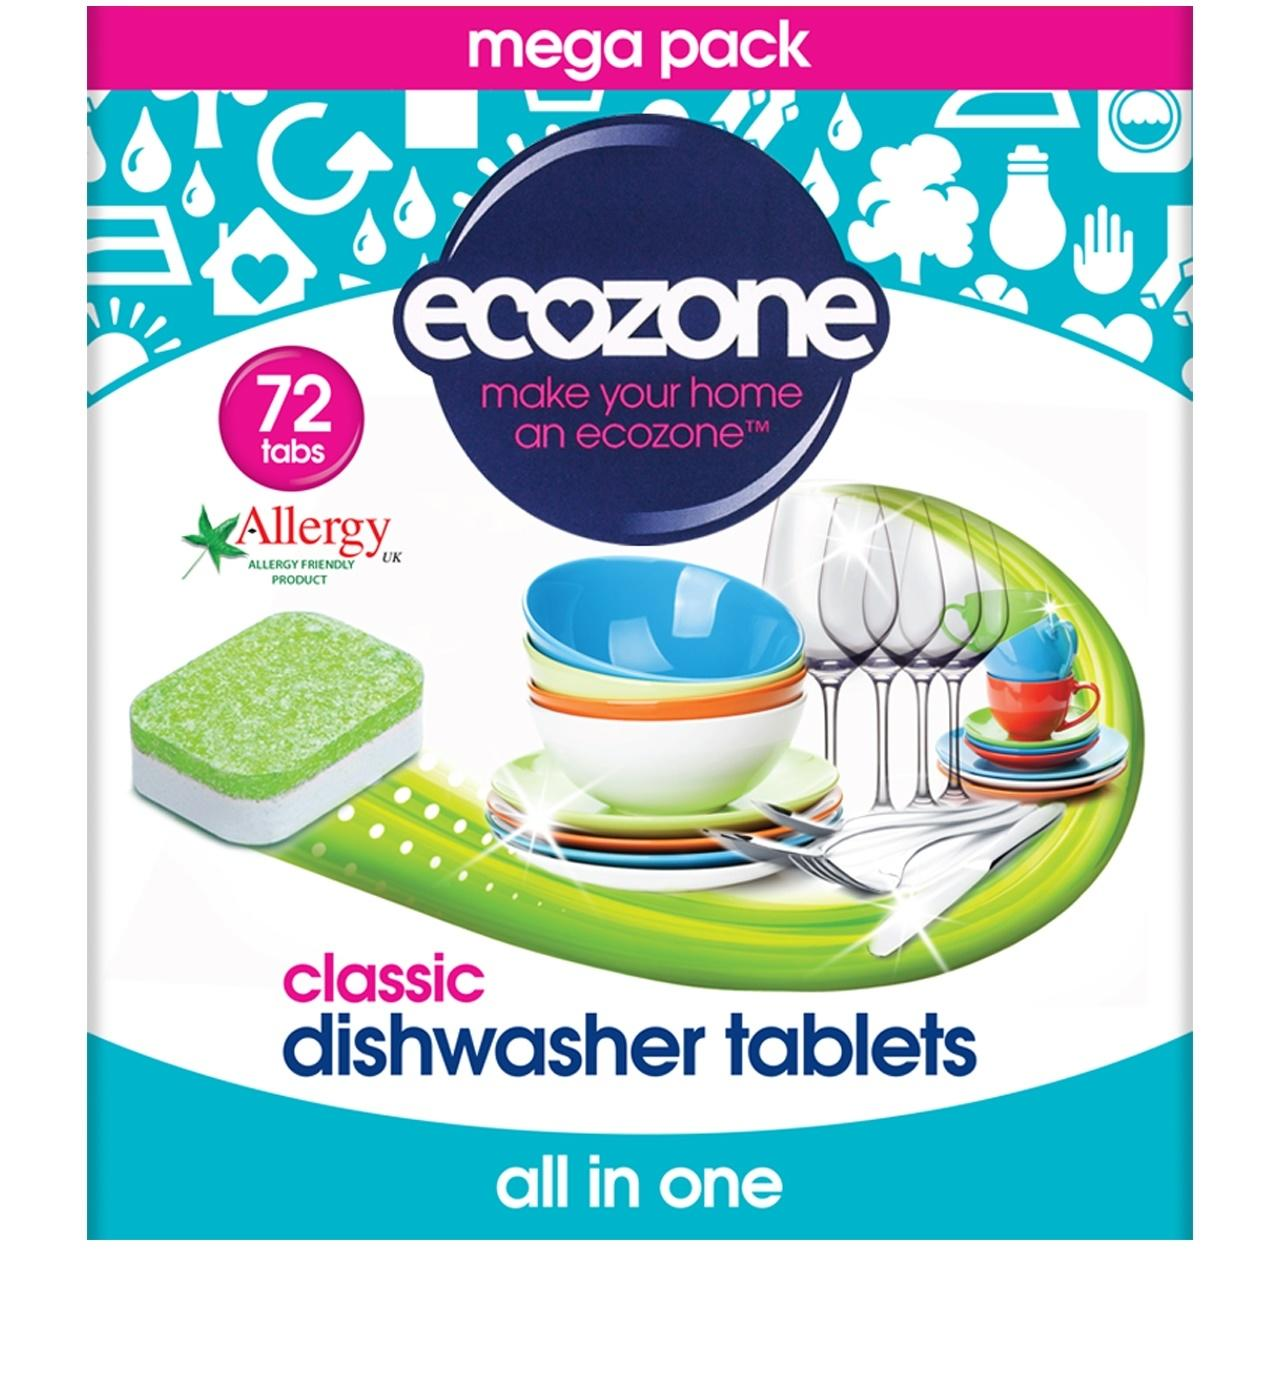 Ecozone dishwasher tablets provide sparkling results while respecting your environment. Ideal for use with Ecozone Rinse Aid. 72 tablets per pack